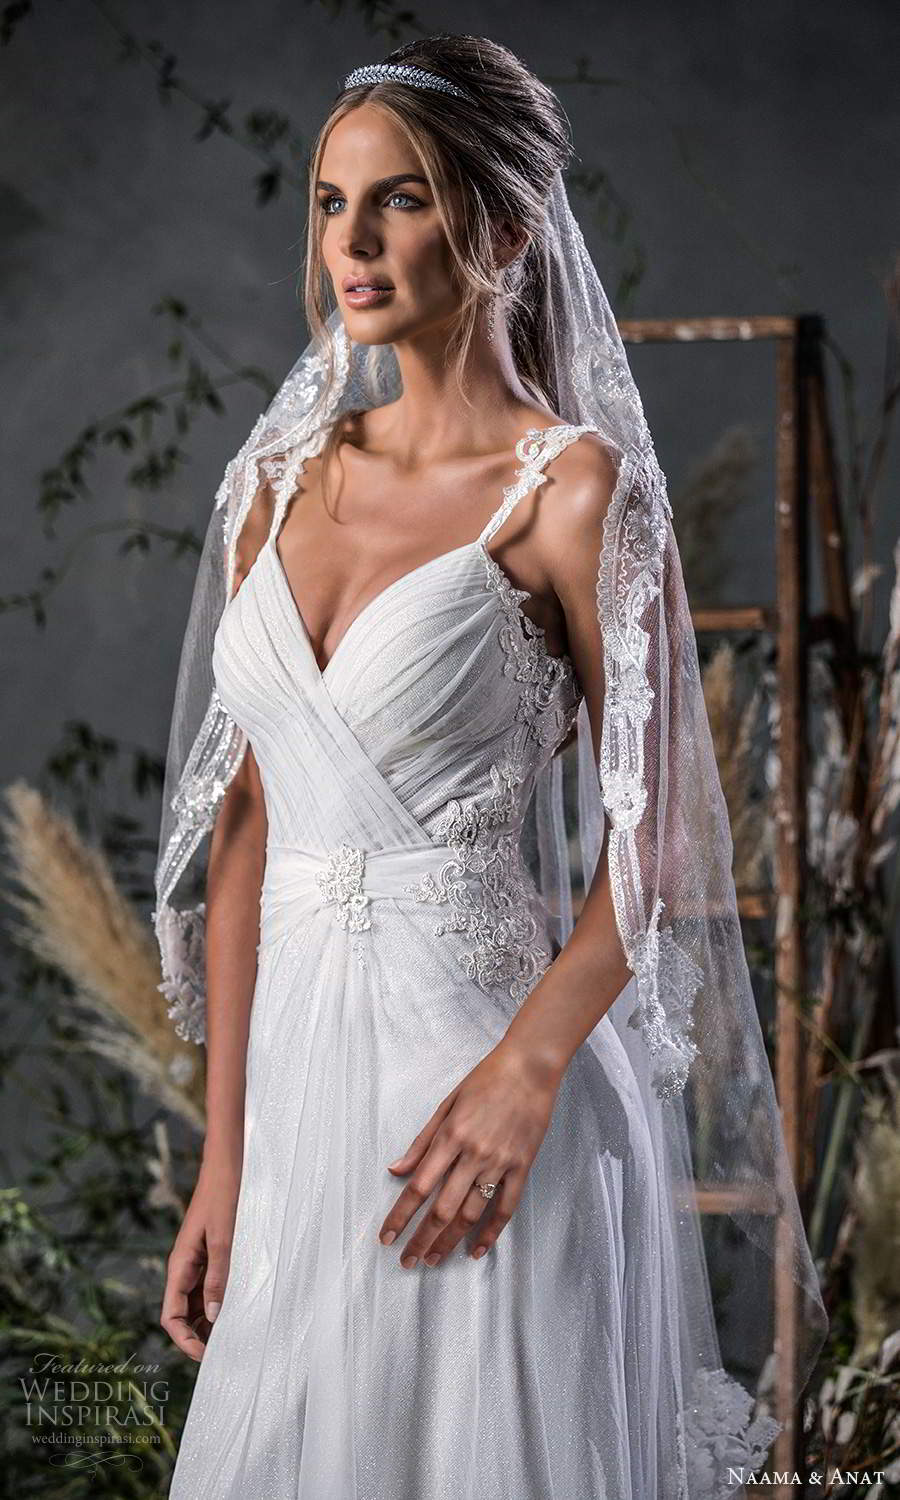 naama anat fall 2020 bridal sleeveless straps sweetheart neckline ruched bodice a line wedding dress chapel train v back (9) zbv